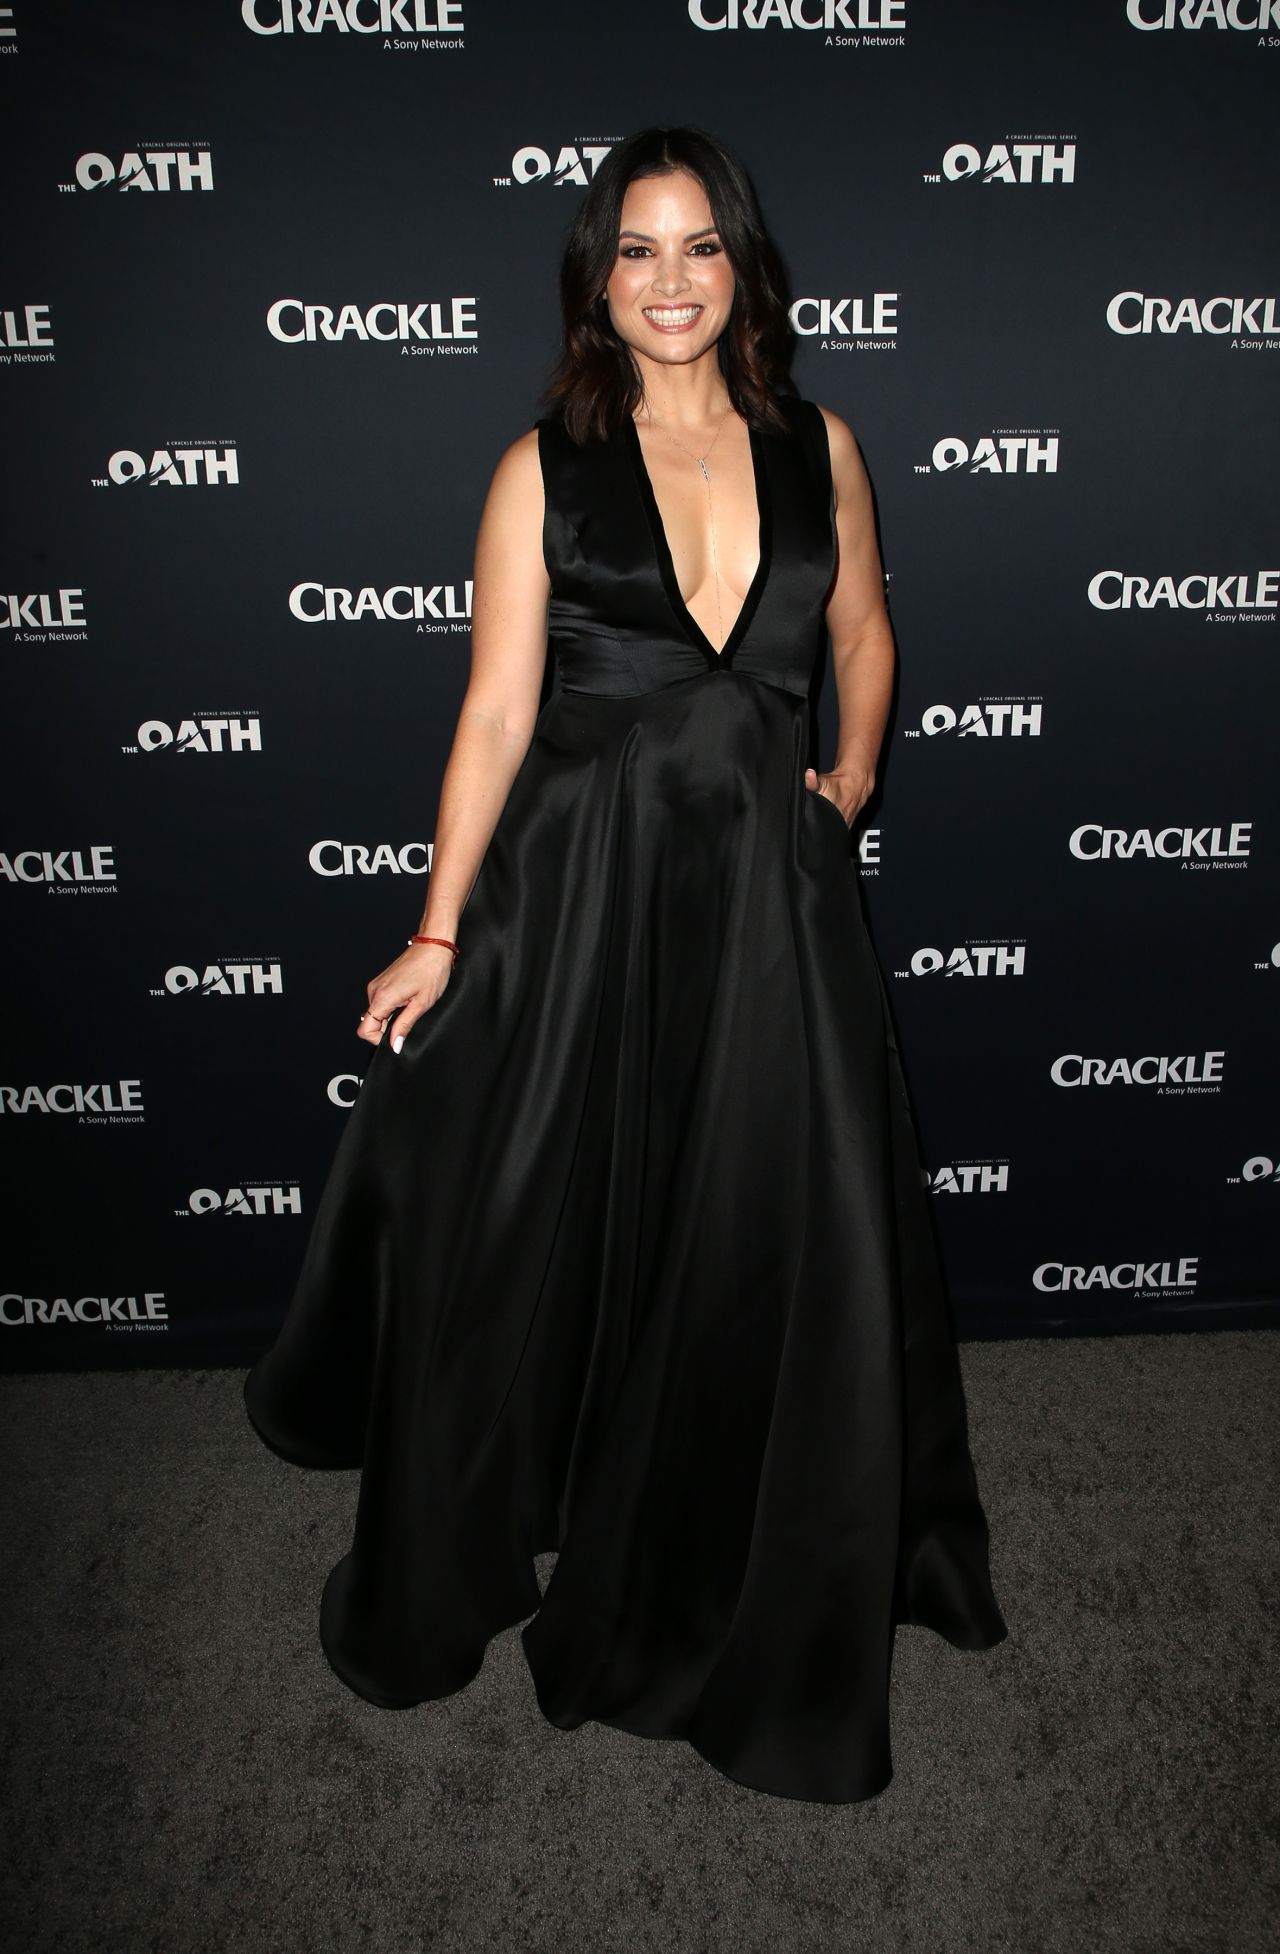 katrina-law-the-oath-tv-series-premiere-in-la-12.jpg